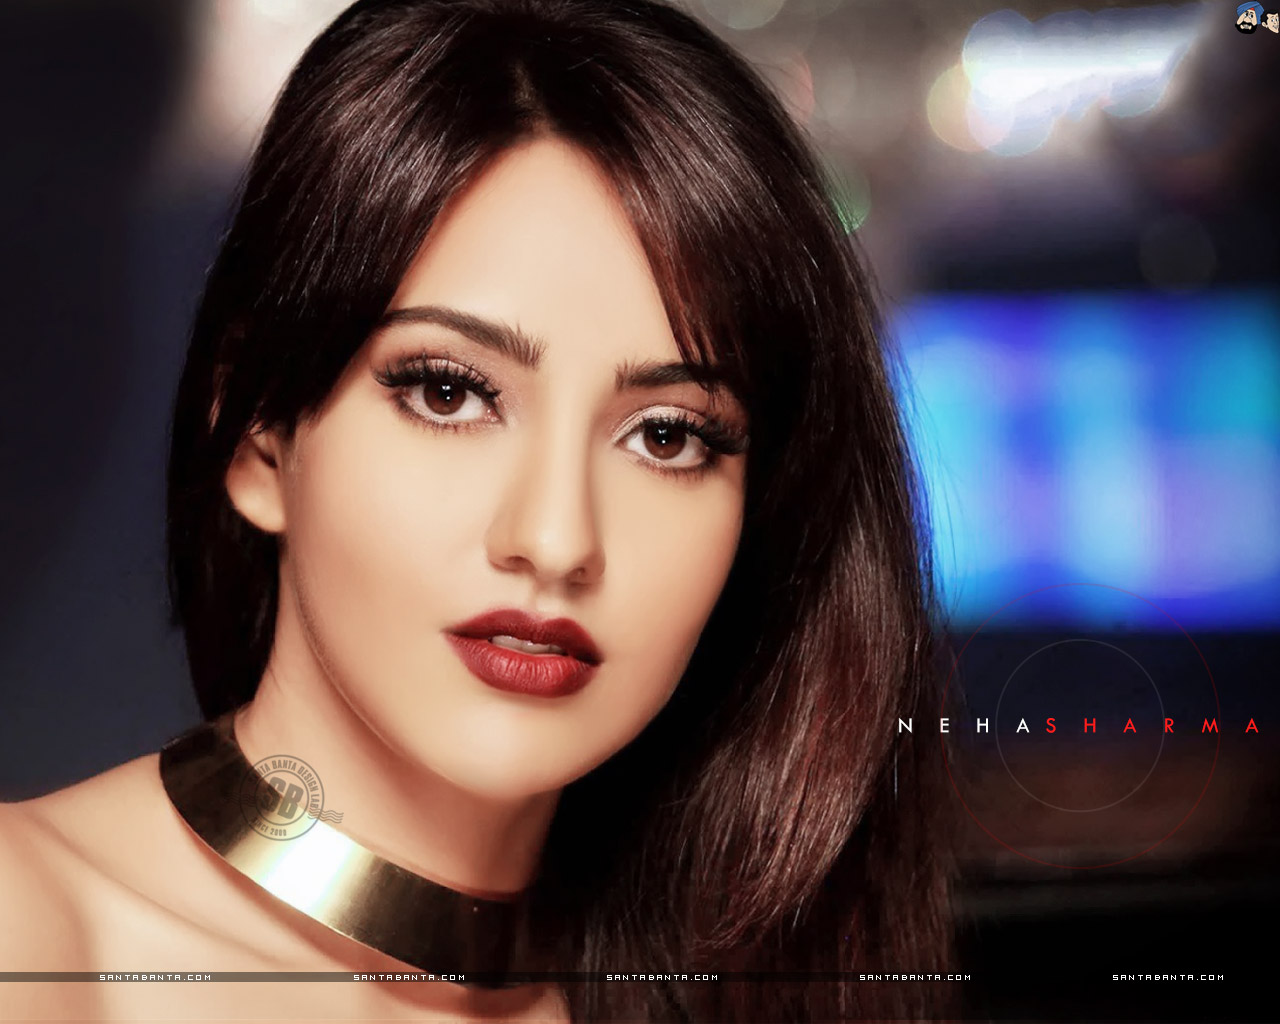 HD Wallpaper Images Collection Of Neha Sharma HQ